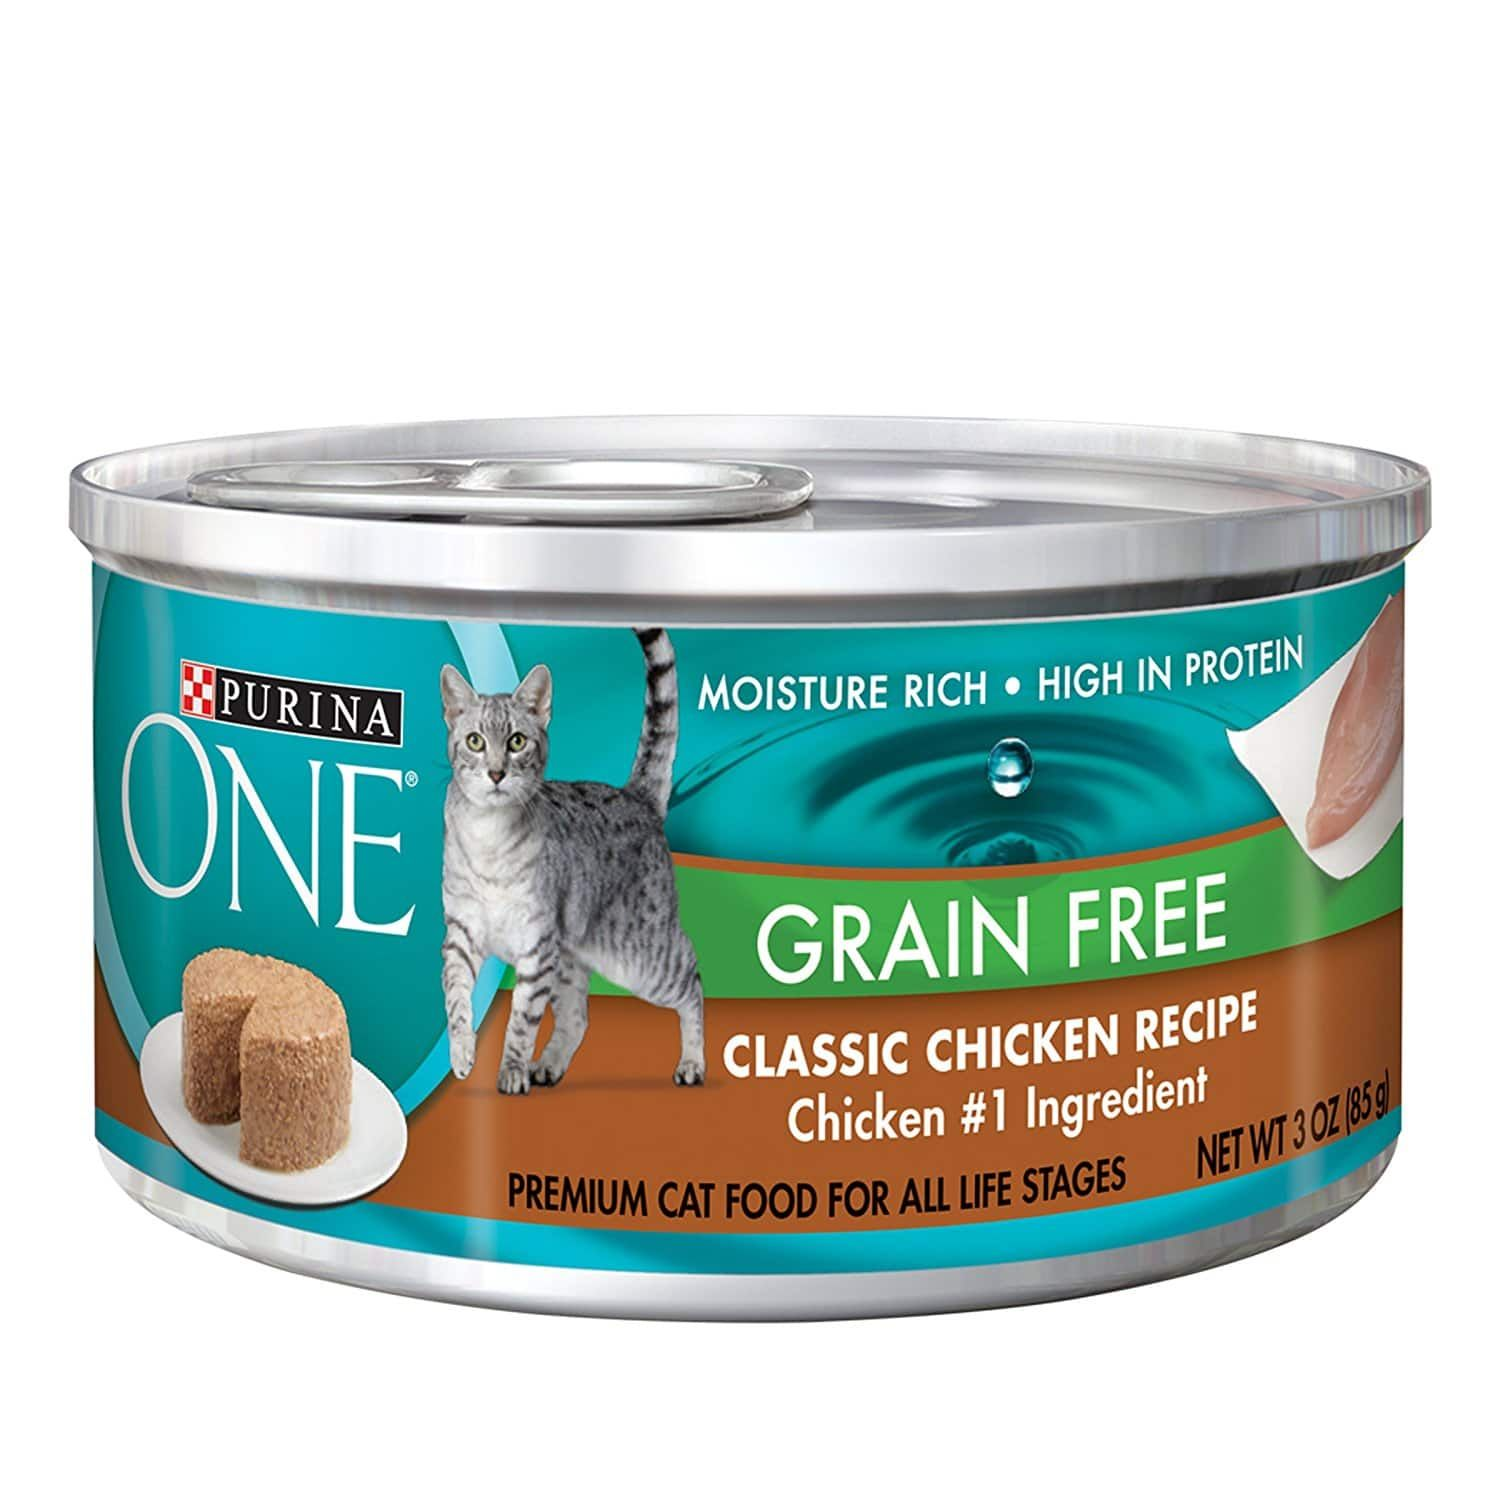 Top 10 Best Canned Cat Foods In 2020 Hqreview Classic Chicken Recipe Canned Cat Food Cat Food